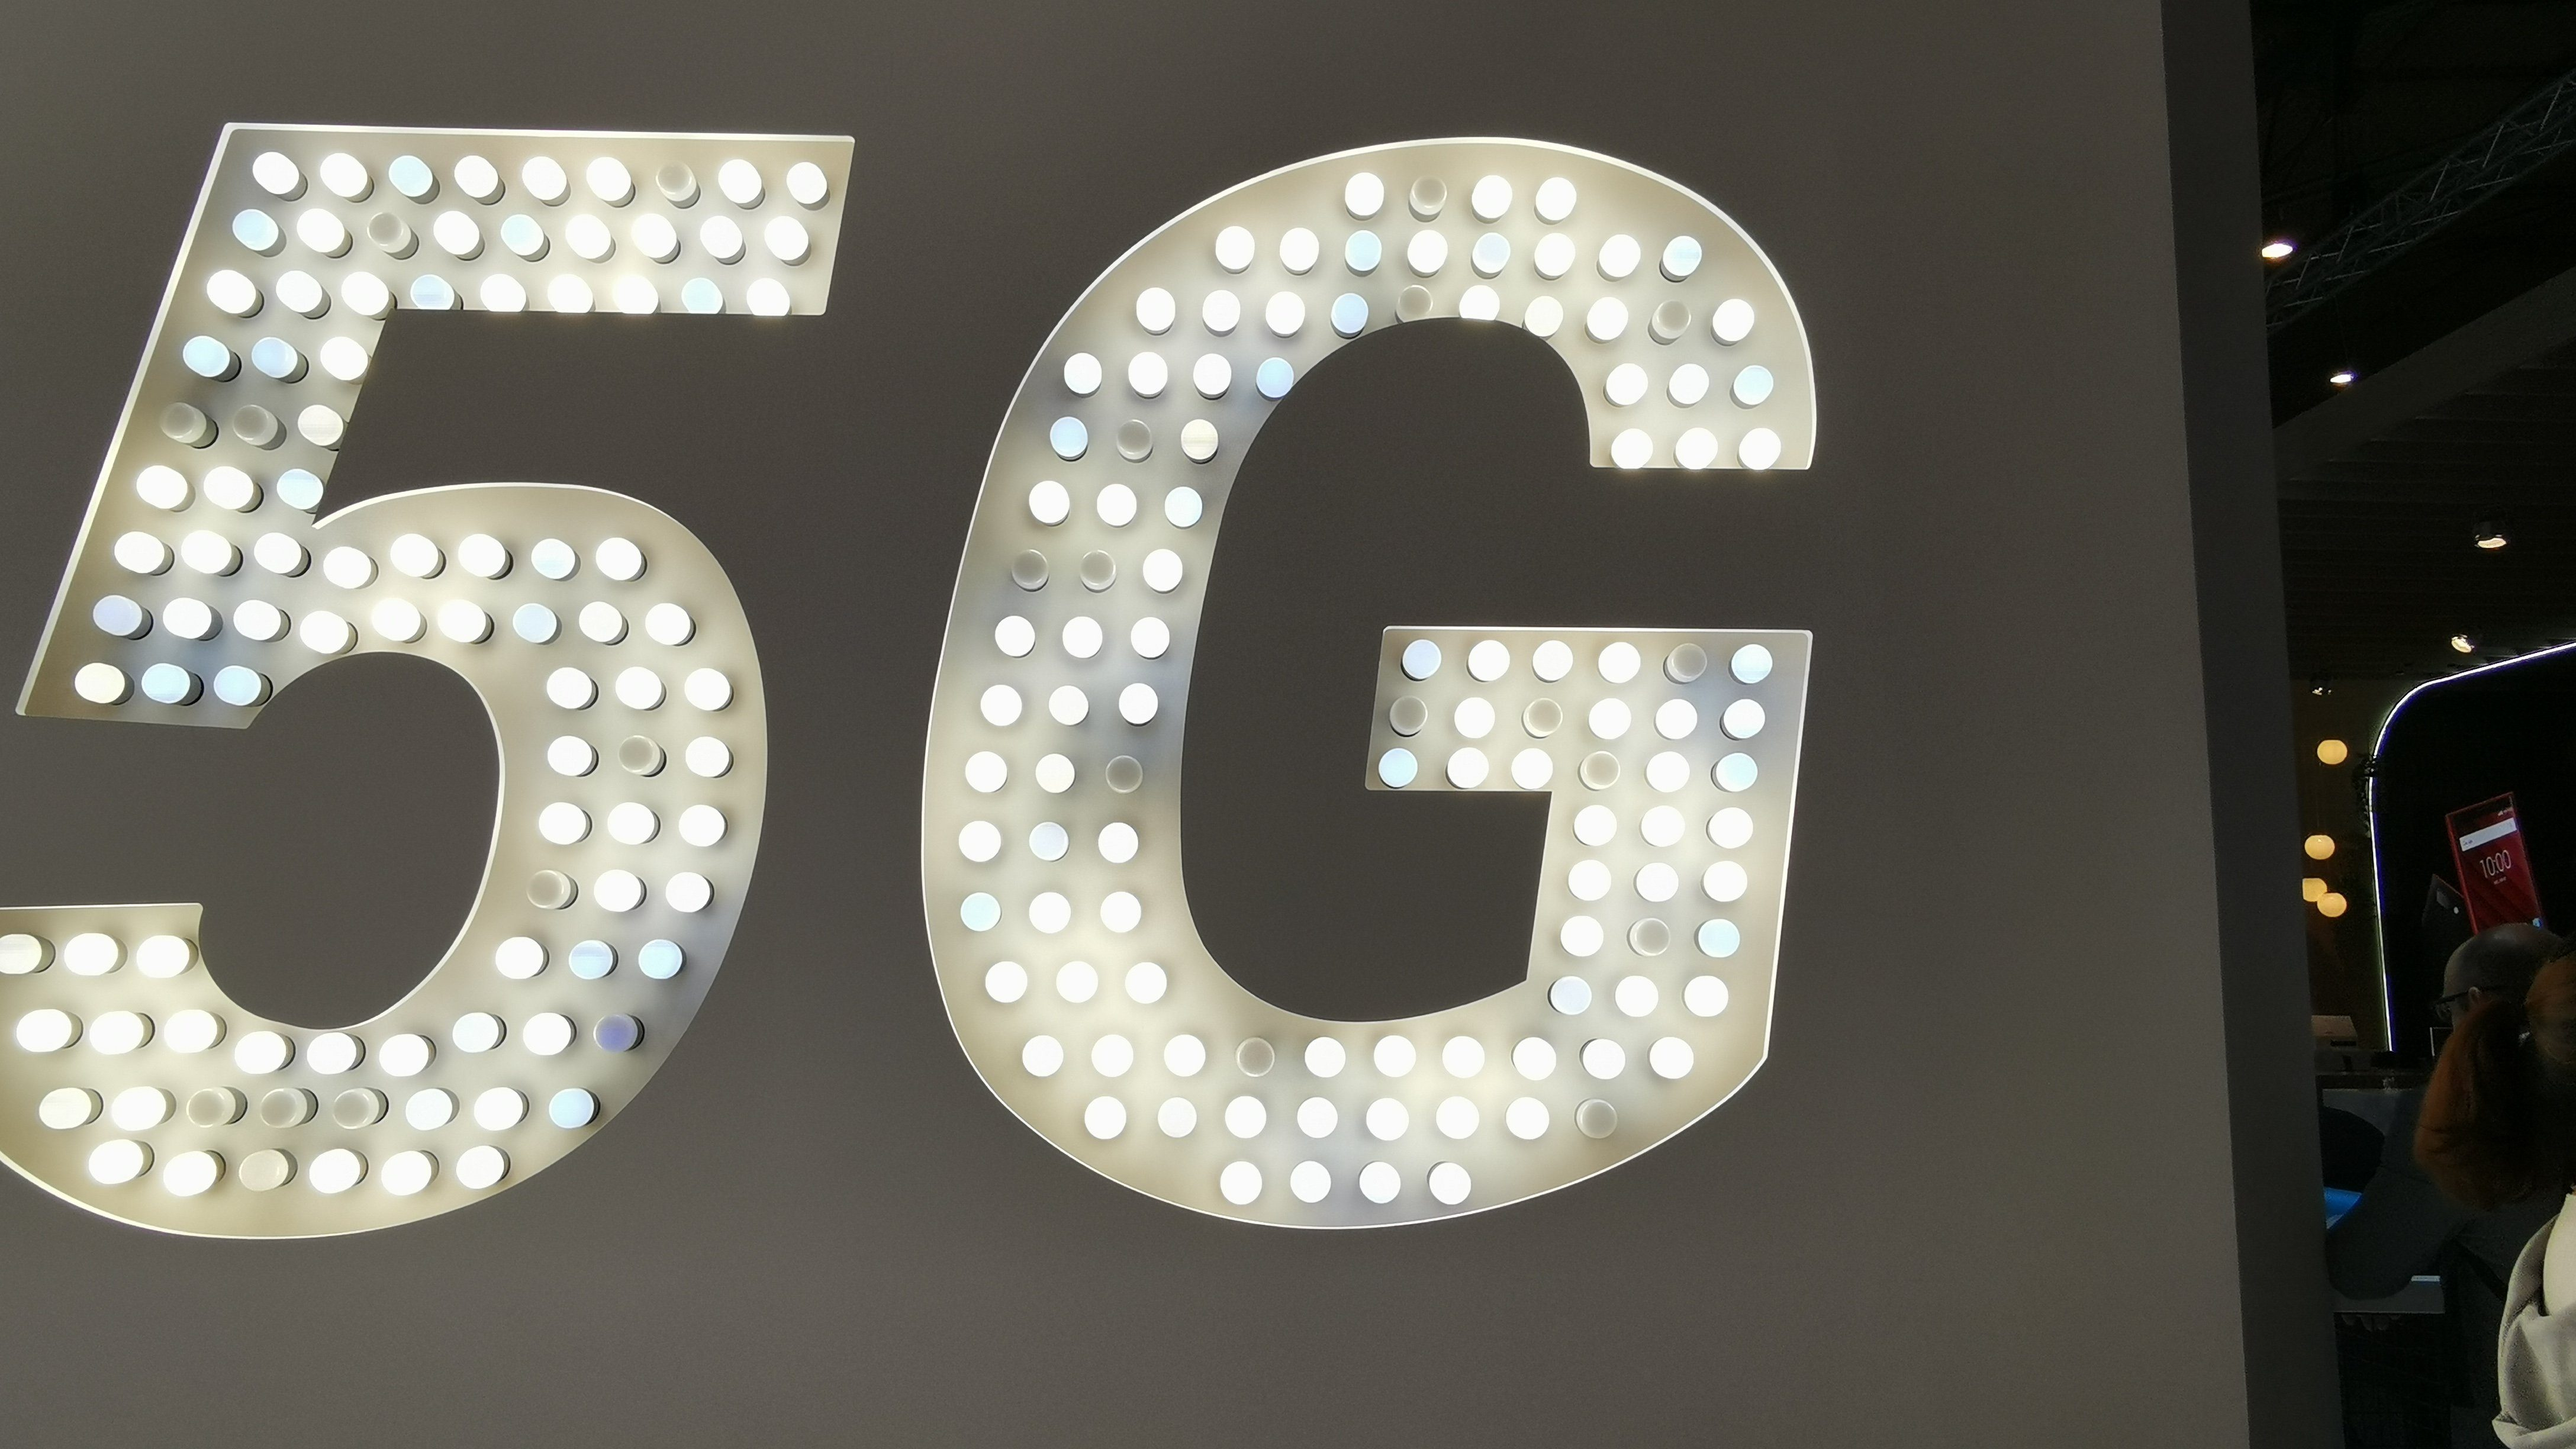 Counterpoint 5G Future